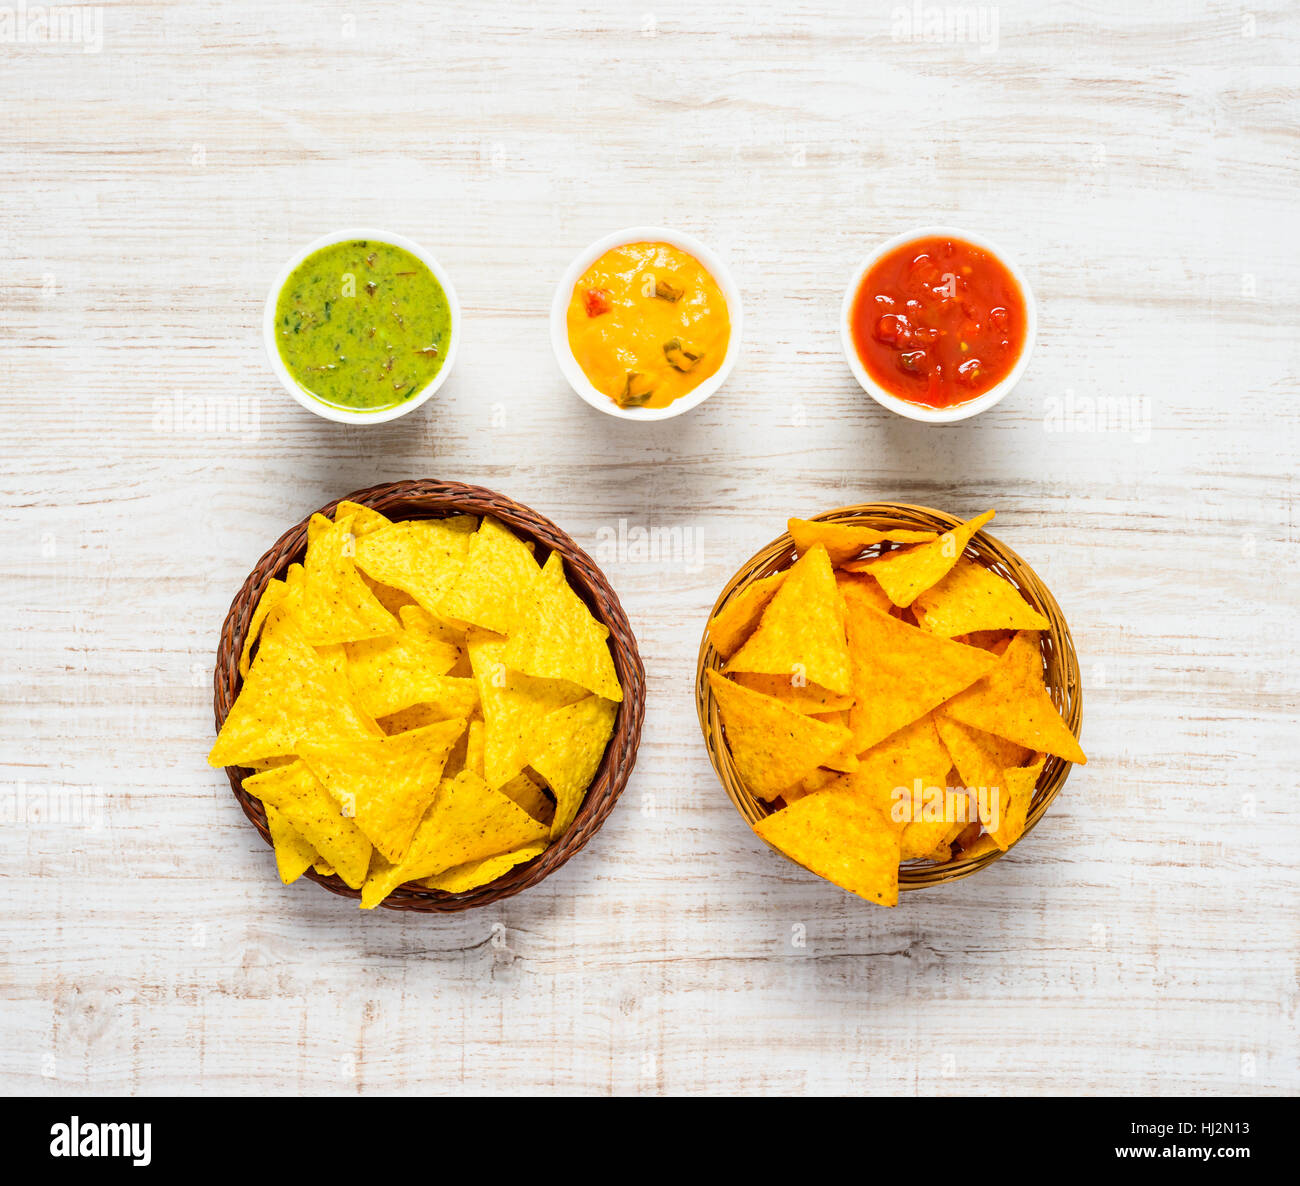 Mexican Cuisine Appetizer Tortilla Corn Chips with Guacamole, Chese and Tomato dip in Top View - Stock Image